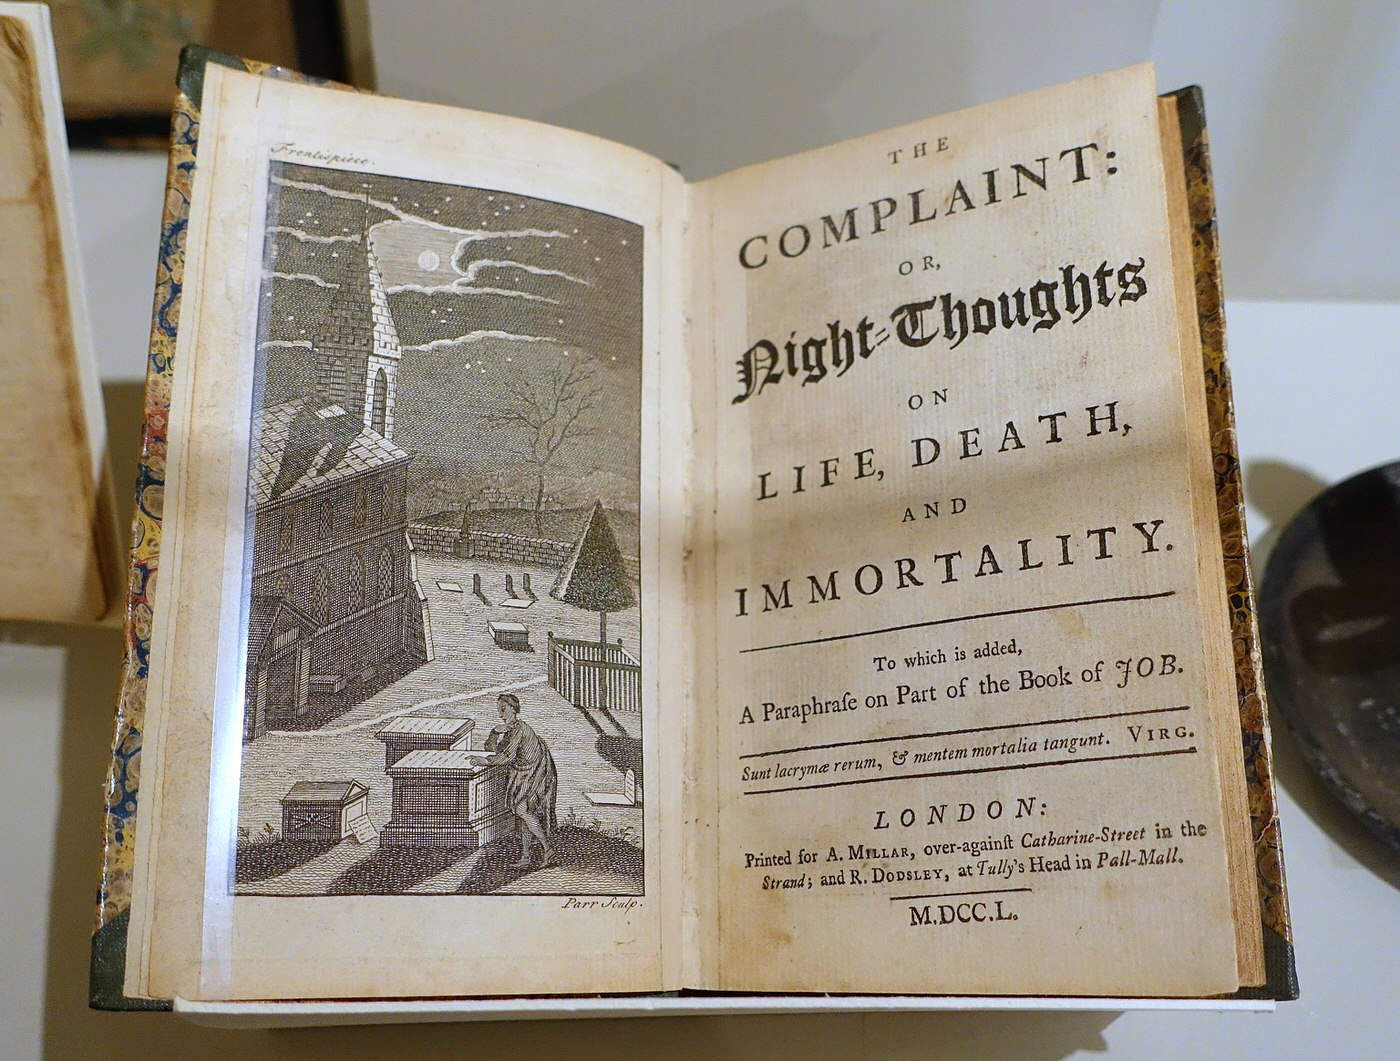 Night Thoughts: The forgotten bestseller that inspired the Gothic